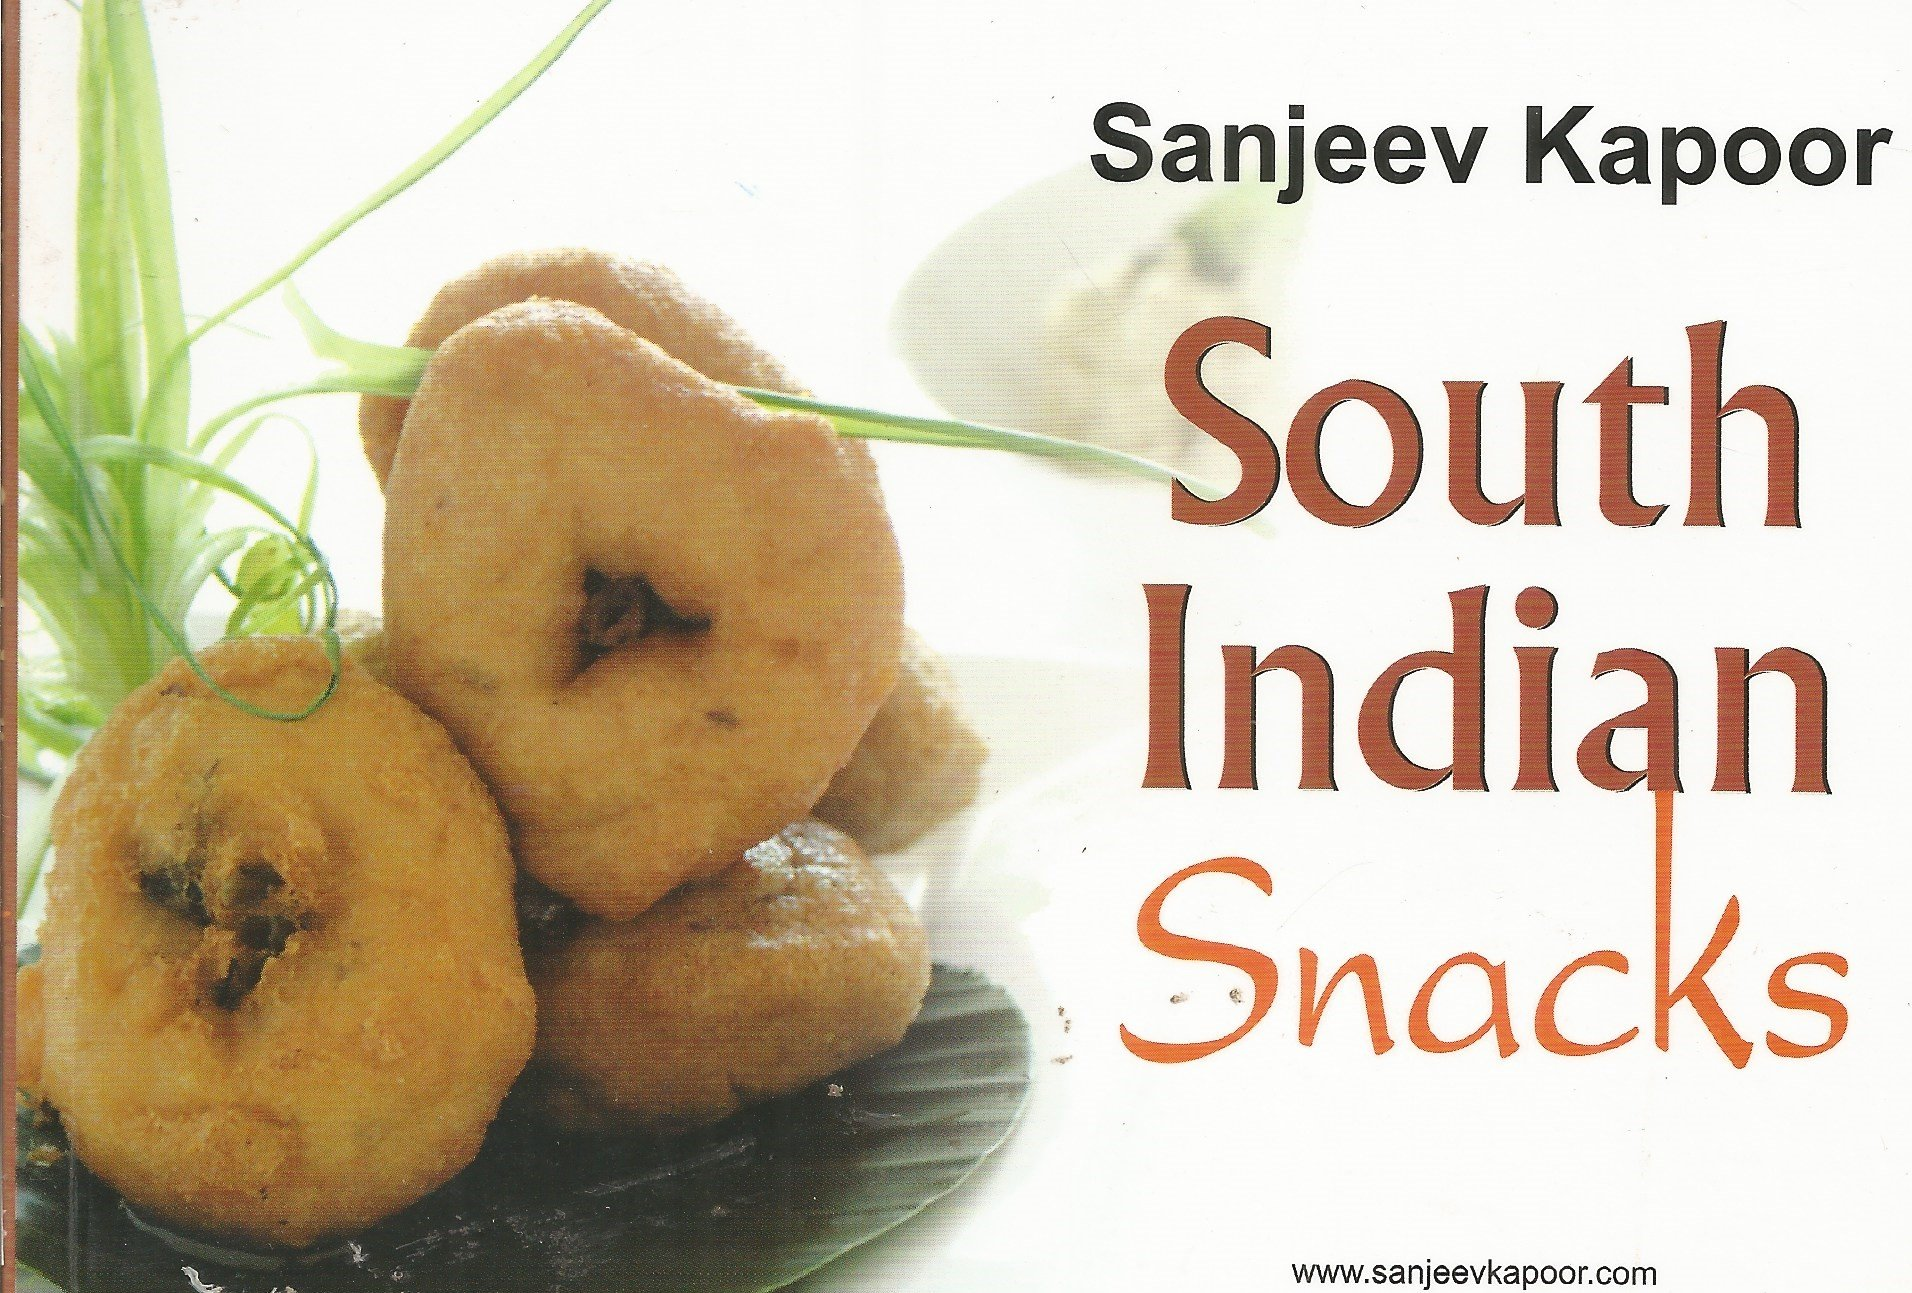 Buy south indian snacks book online at low prices in india south buy south indian snacks book online at low prices in india south indian snacks reviews ratings amazon forumfinder Gallery